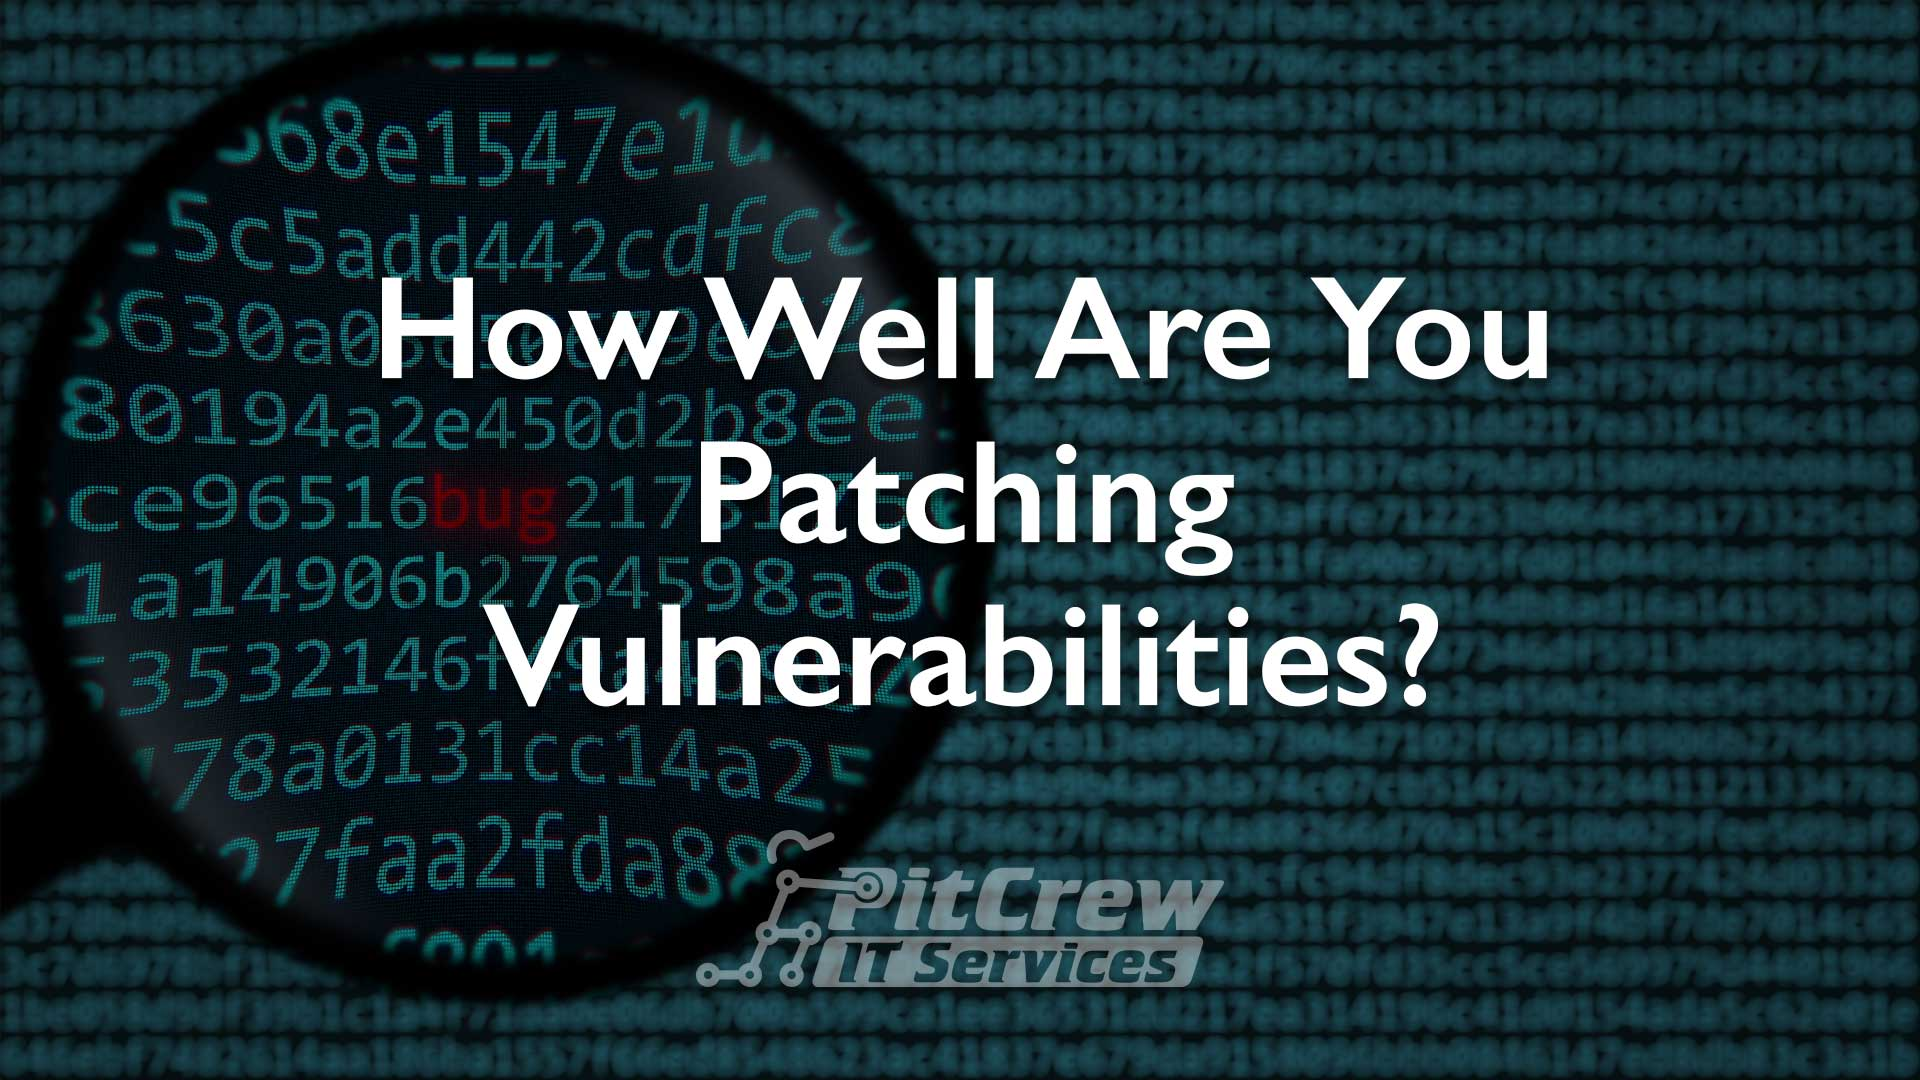 How Well Are You Patching Vulnerabilities